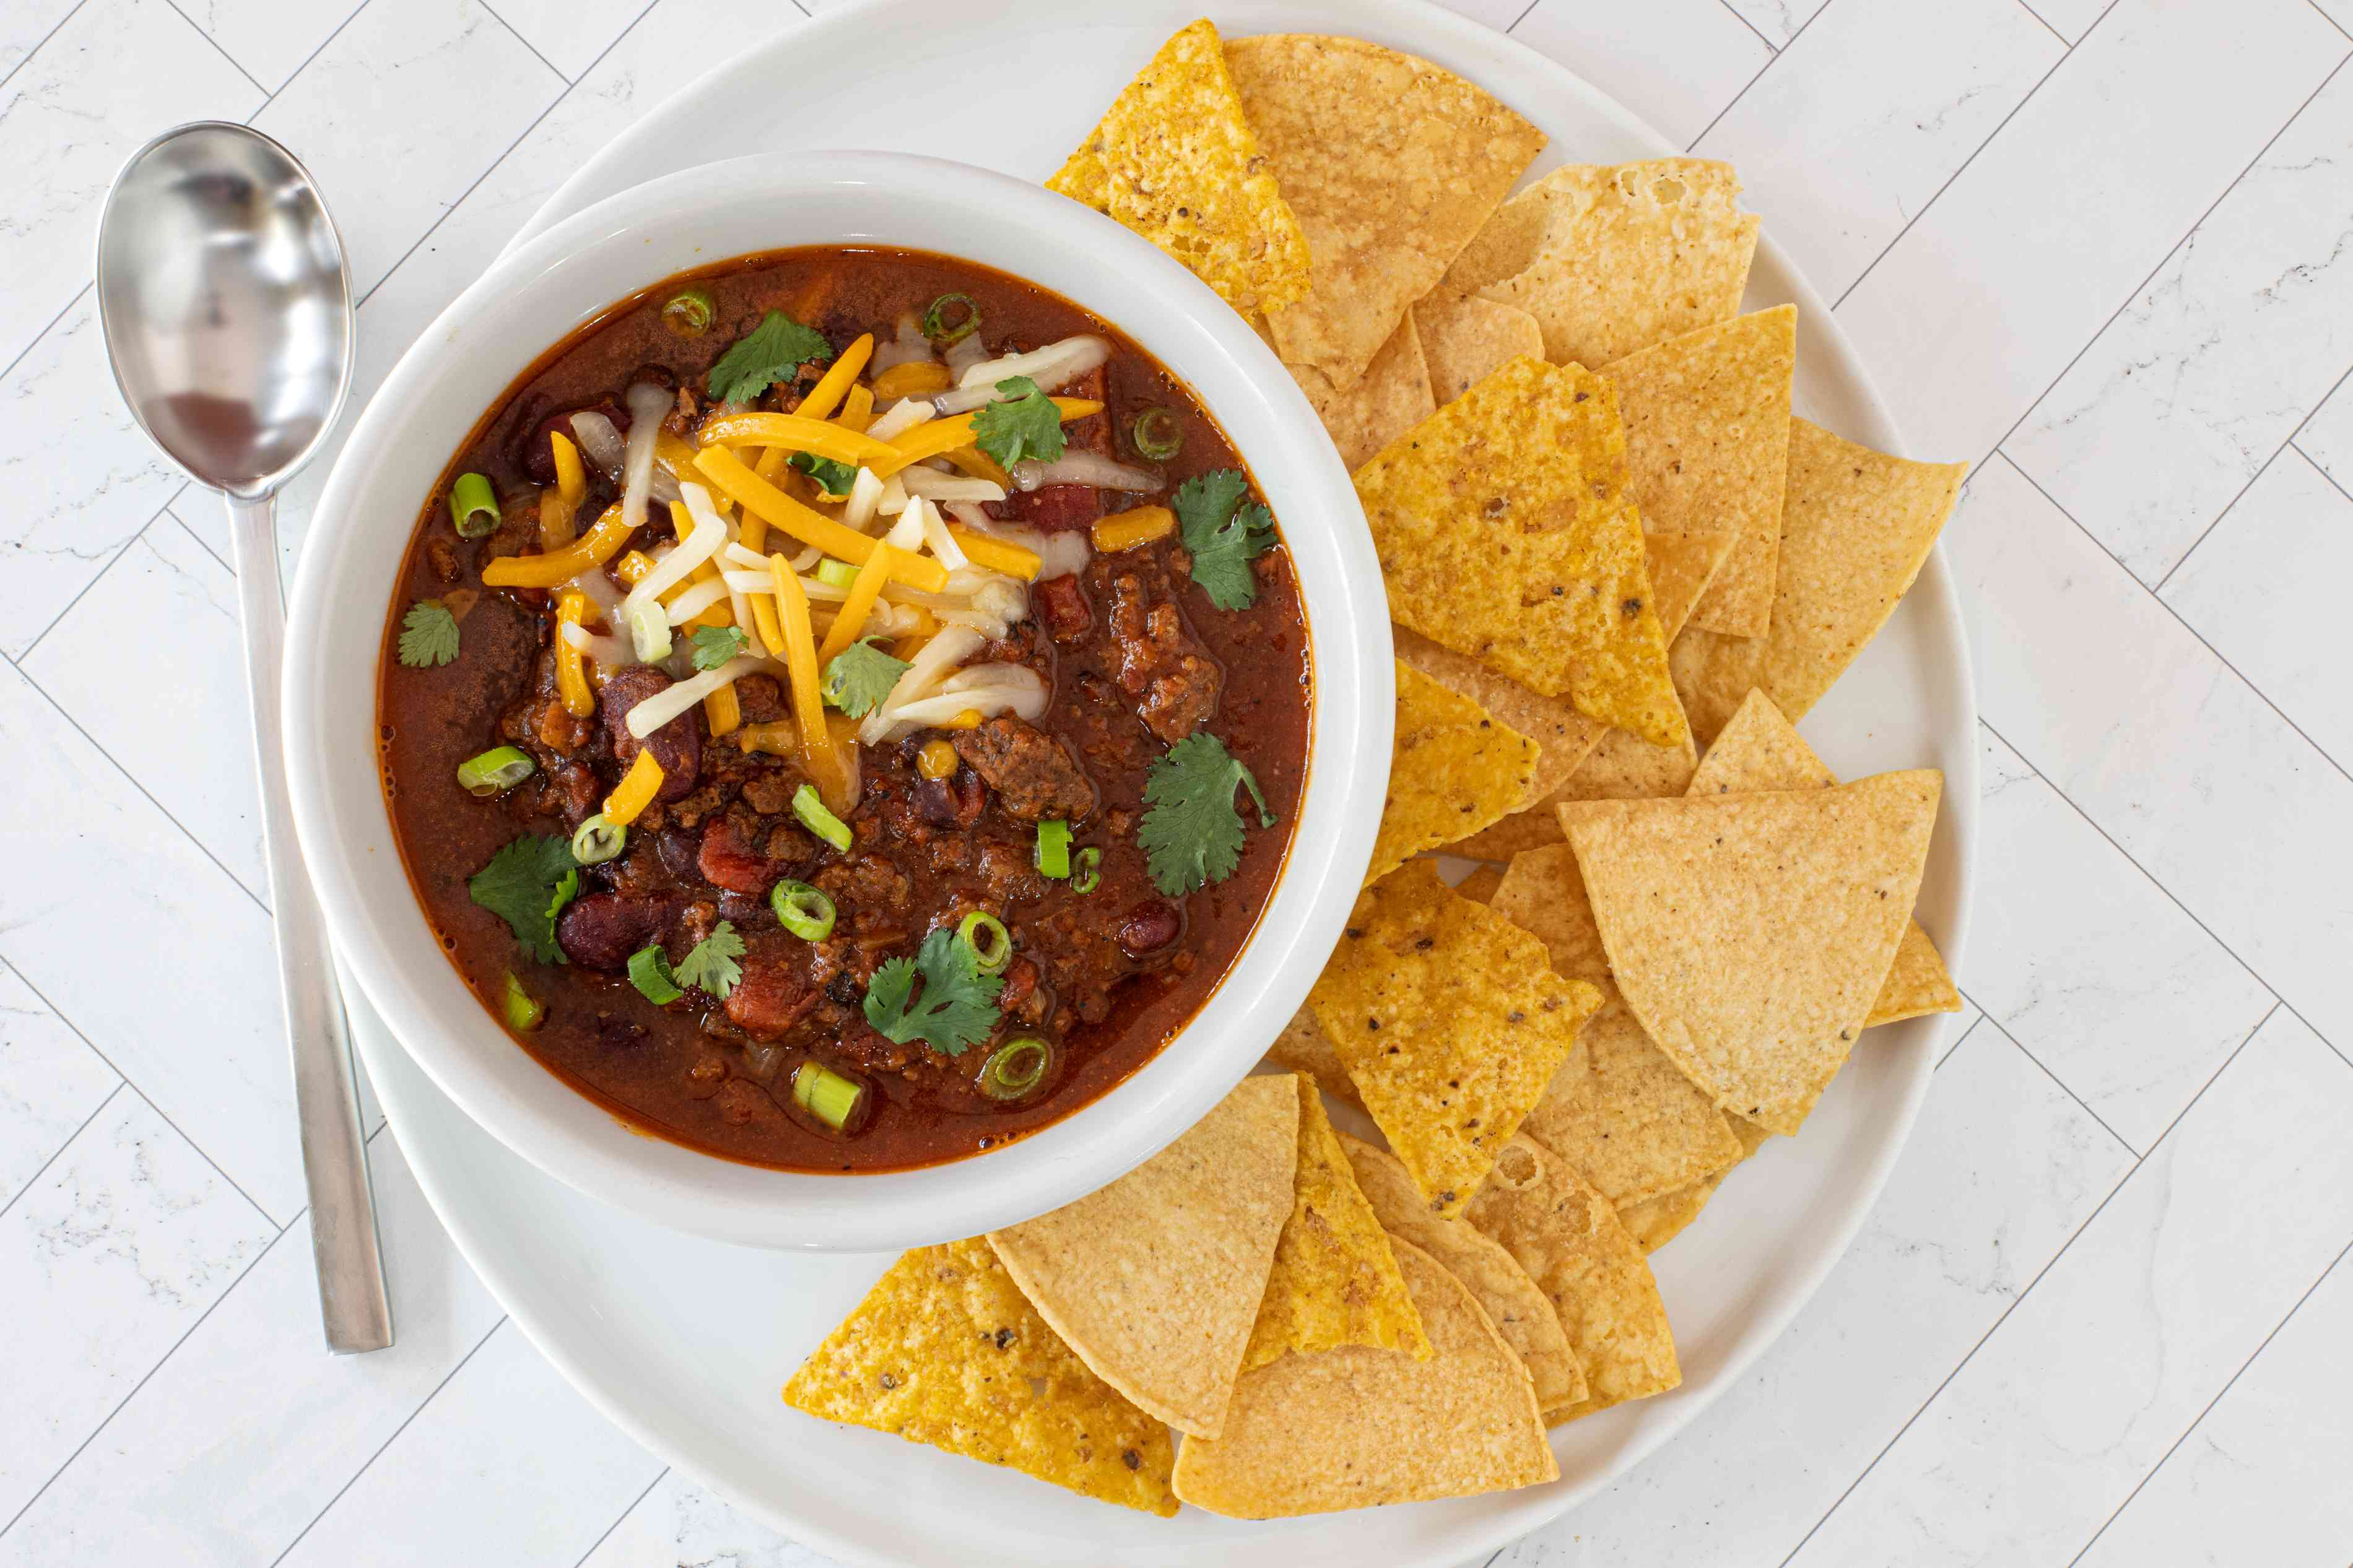 instant pot chili with chips on the side